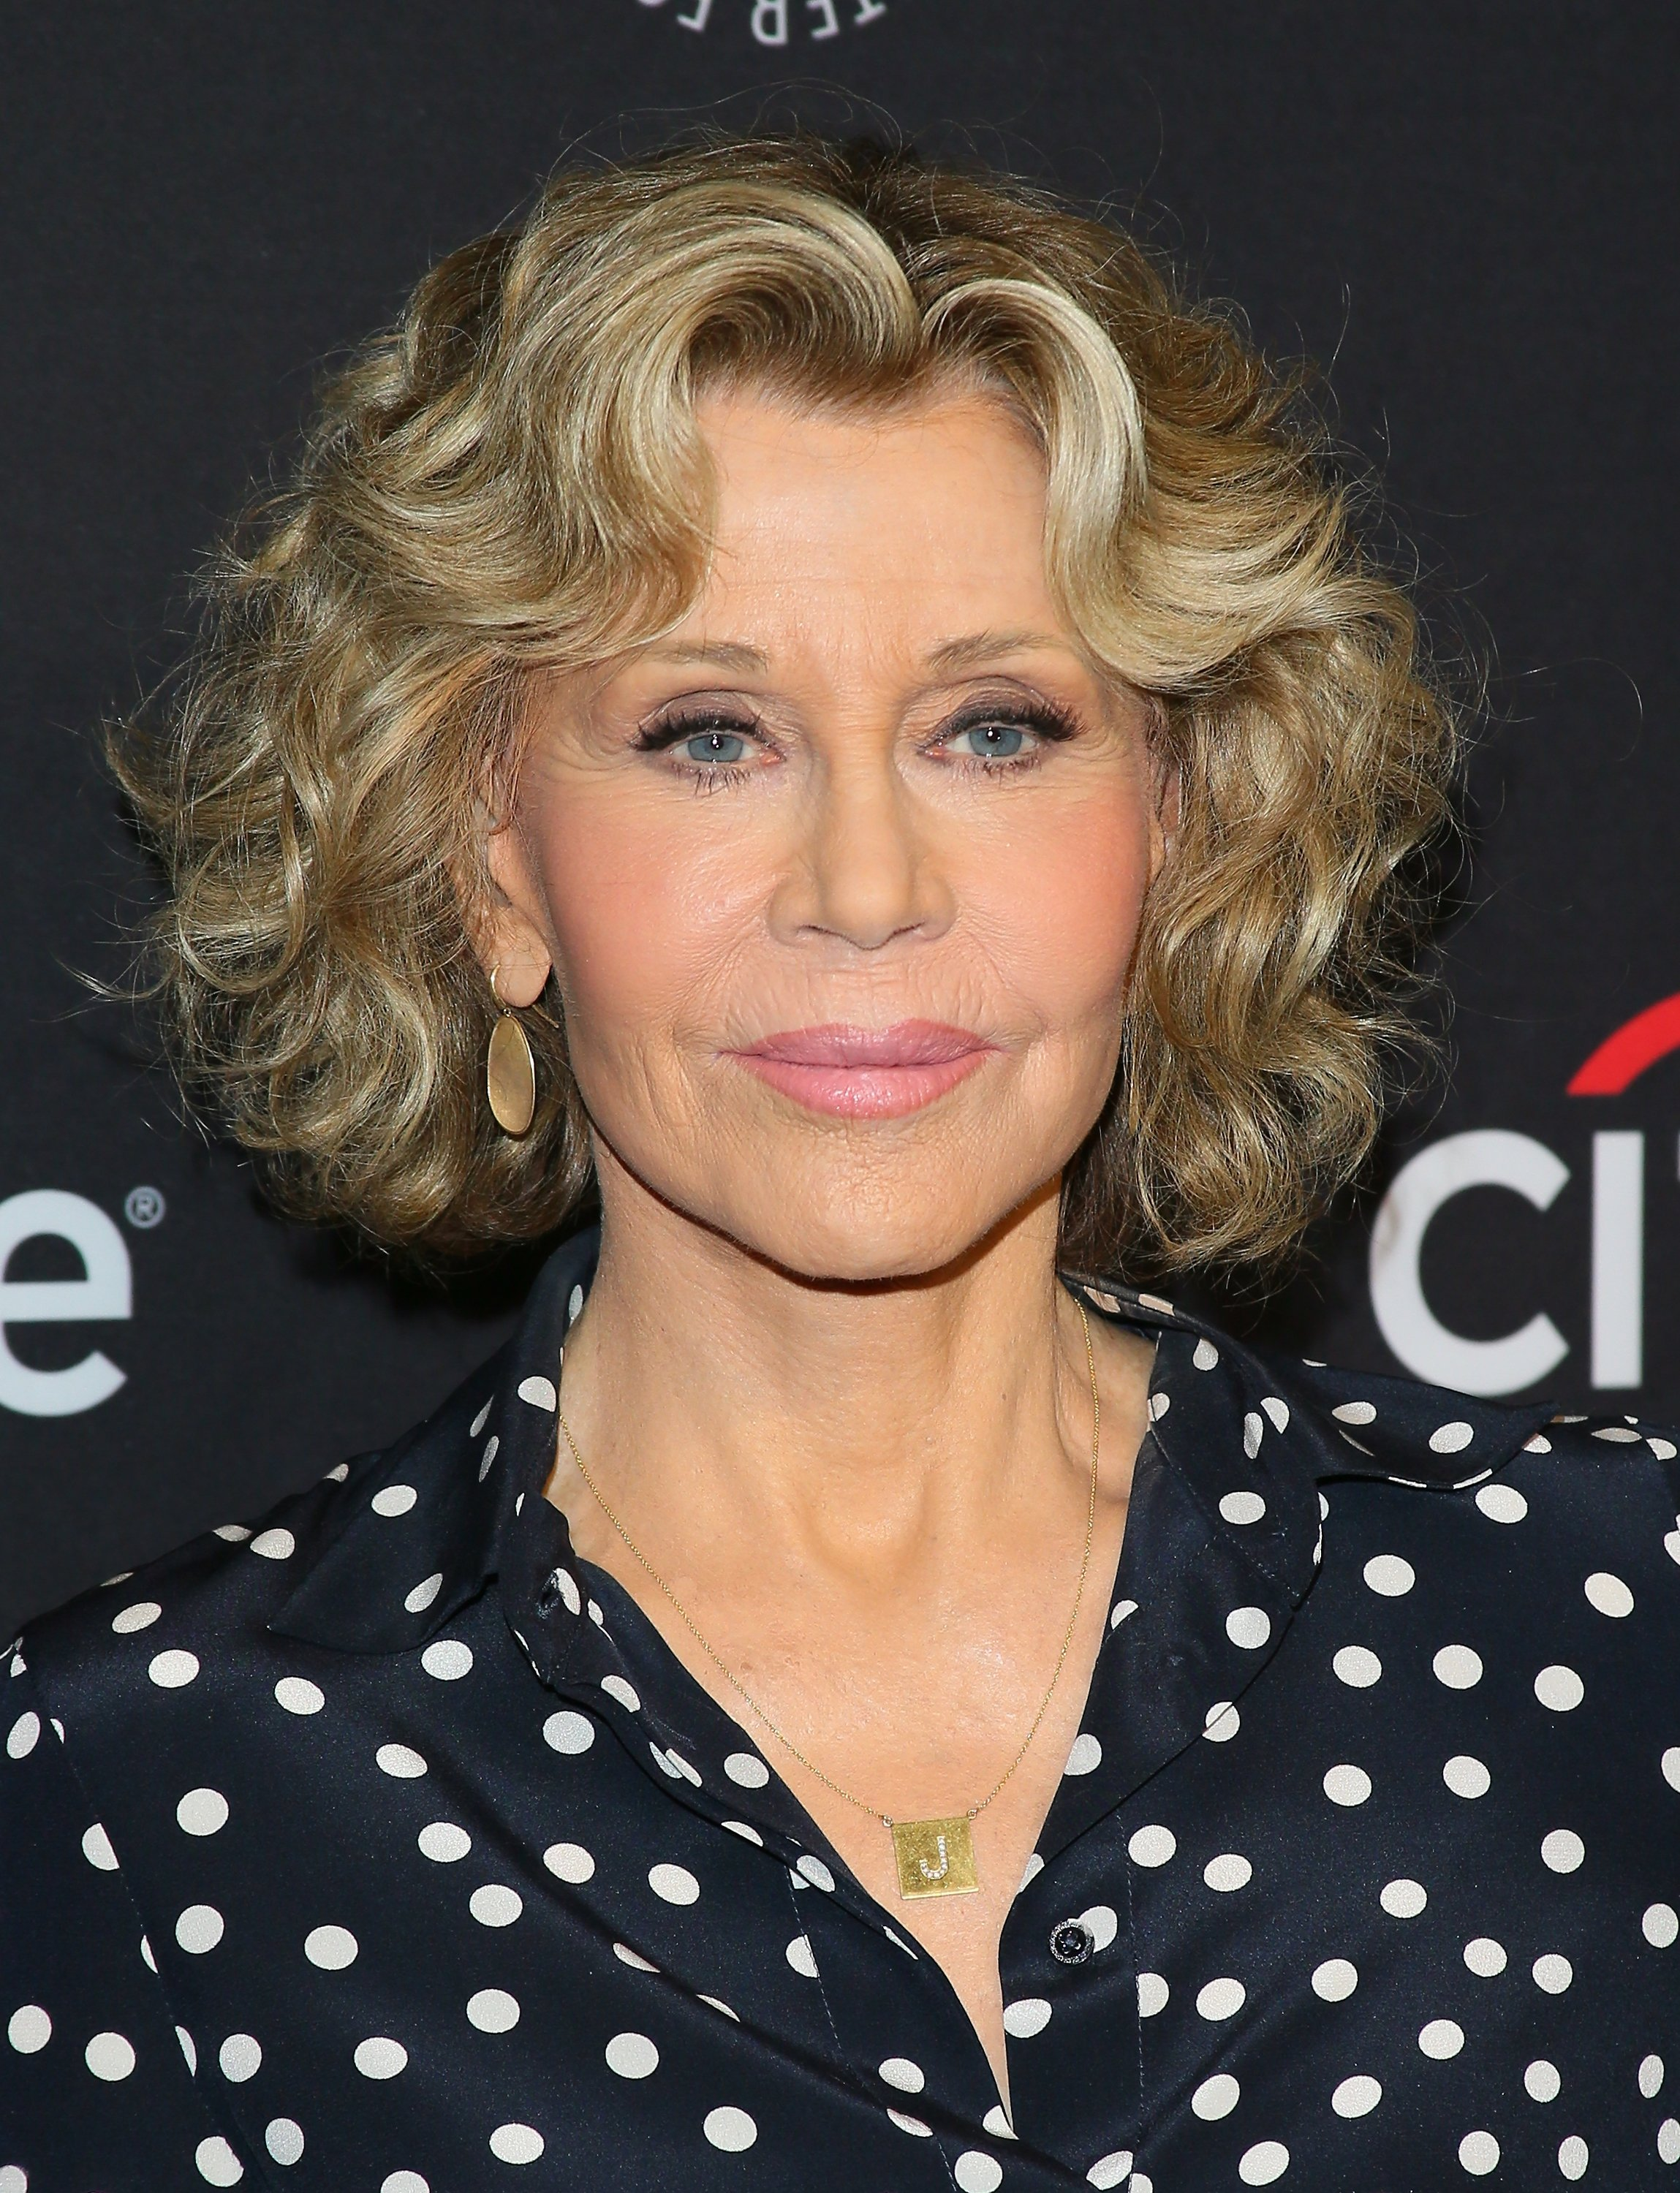 Jane Fonda attends the Paley Center For Media's 2019 Paley Fest LA on March 16, 2019, in Los Angeles, California. | Photo: Getty Images.